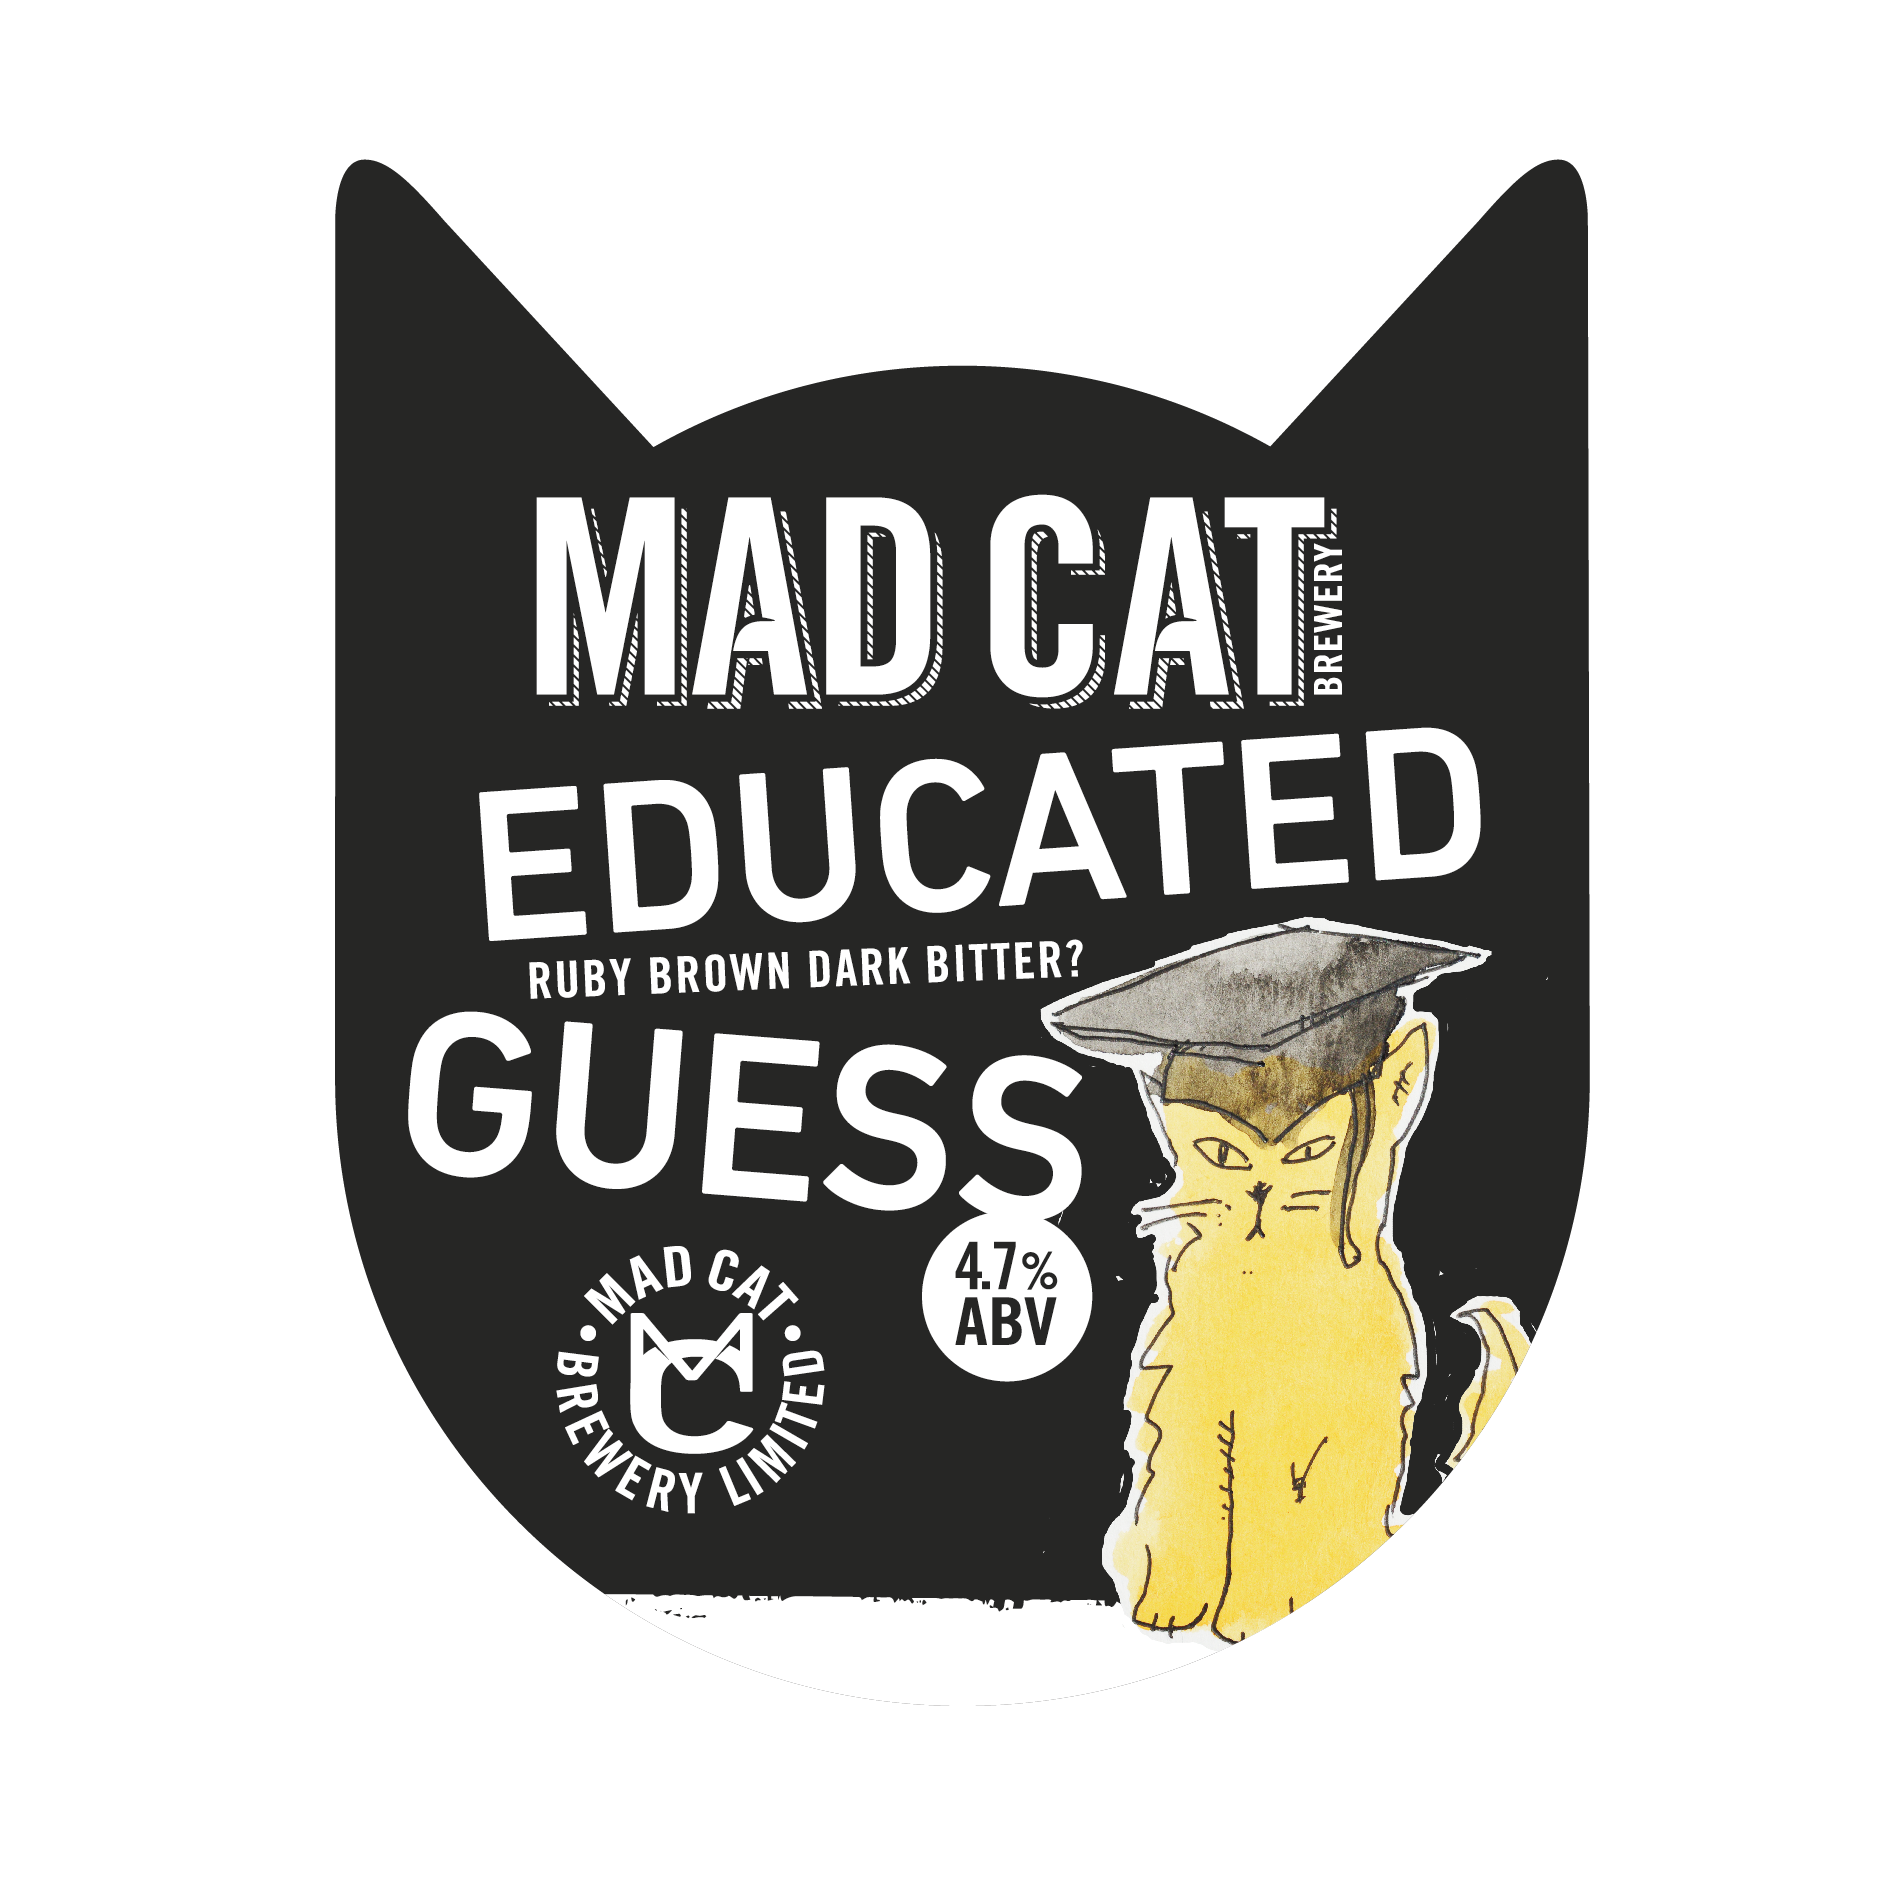 2018 pump clip visuals_EDUCATED GUESS